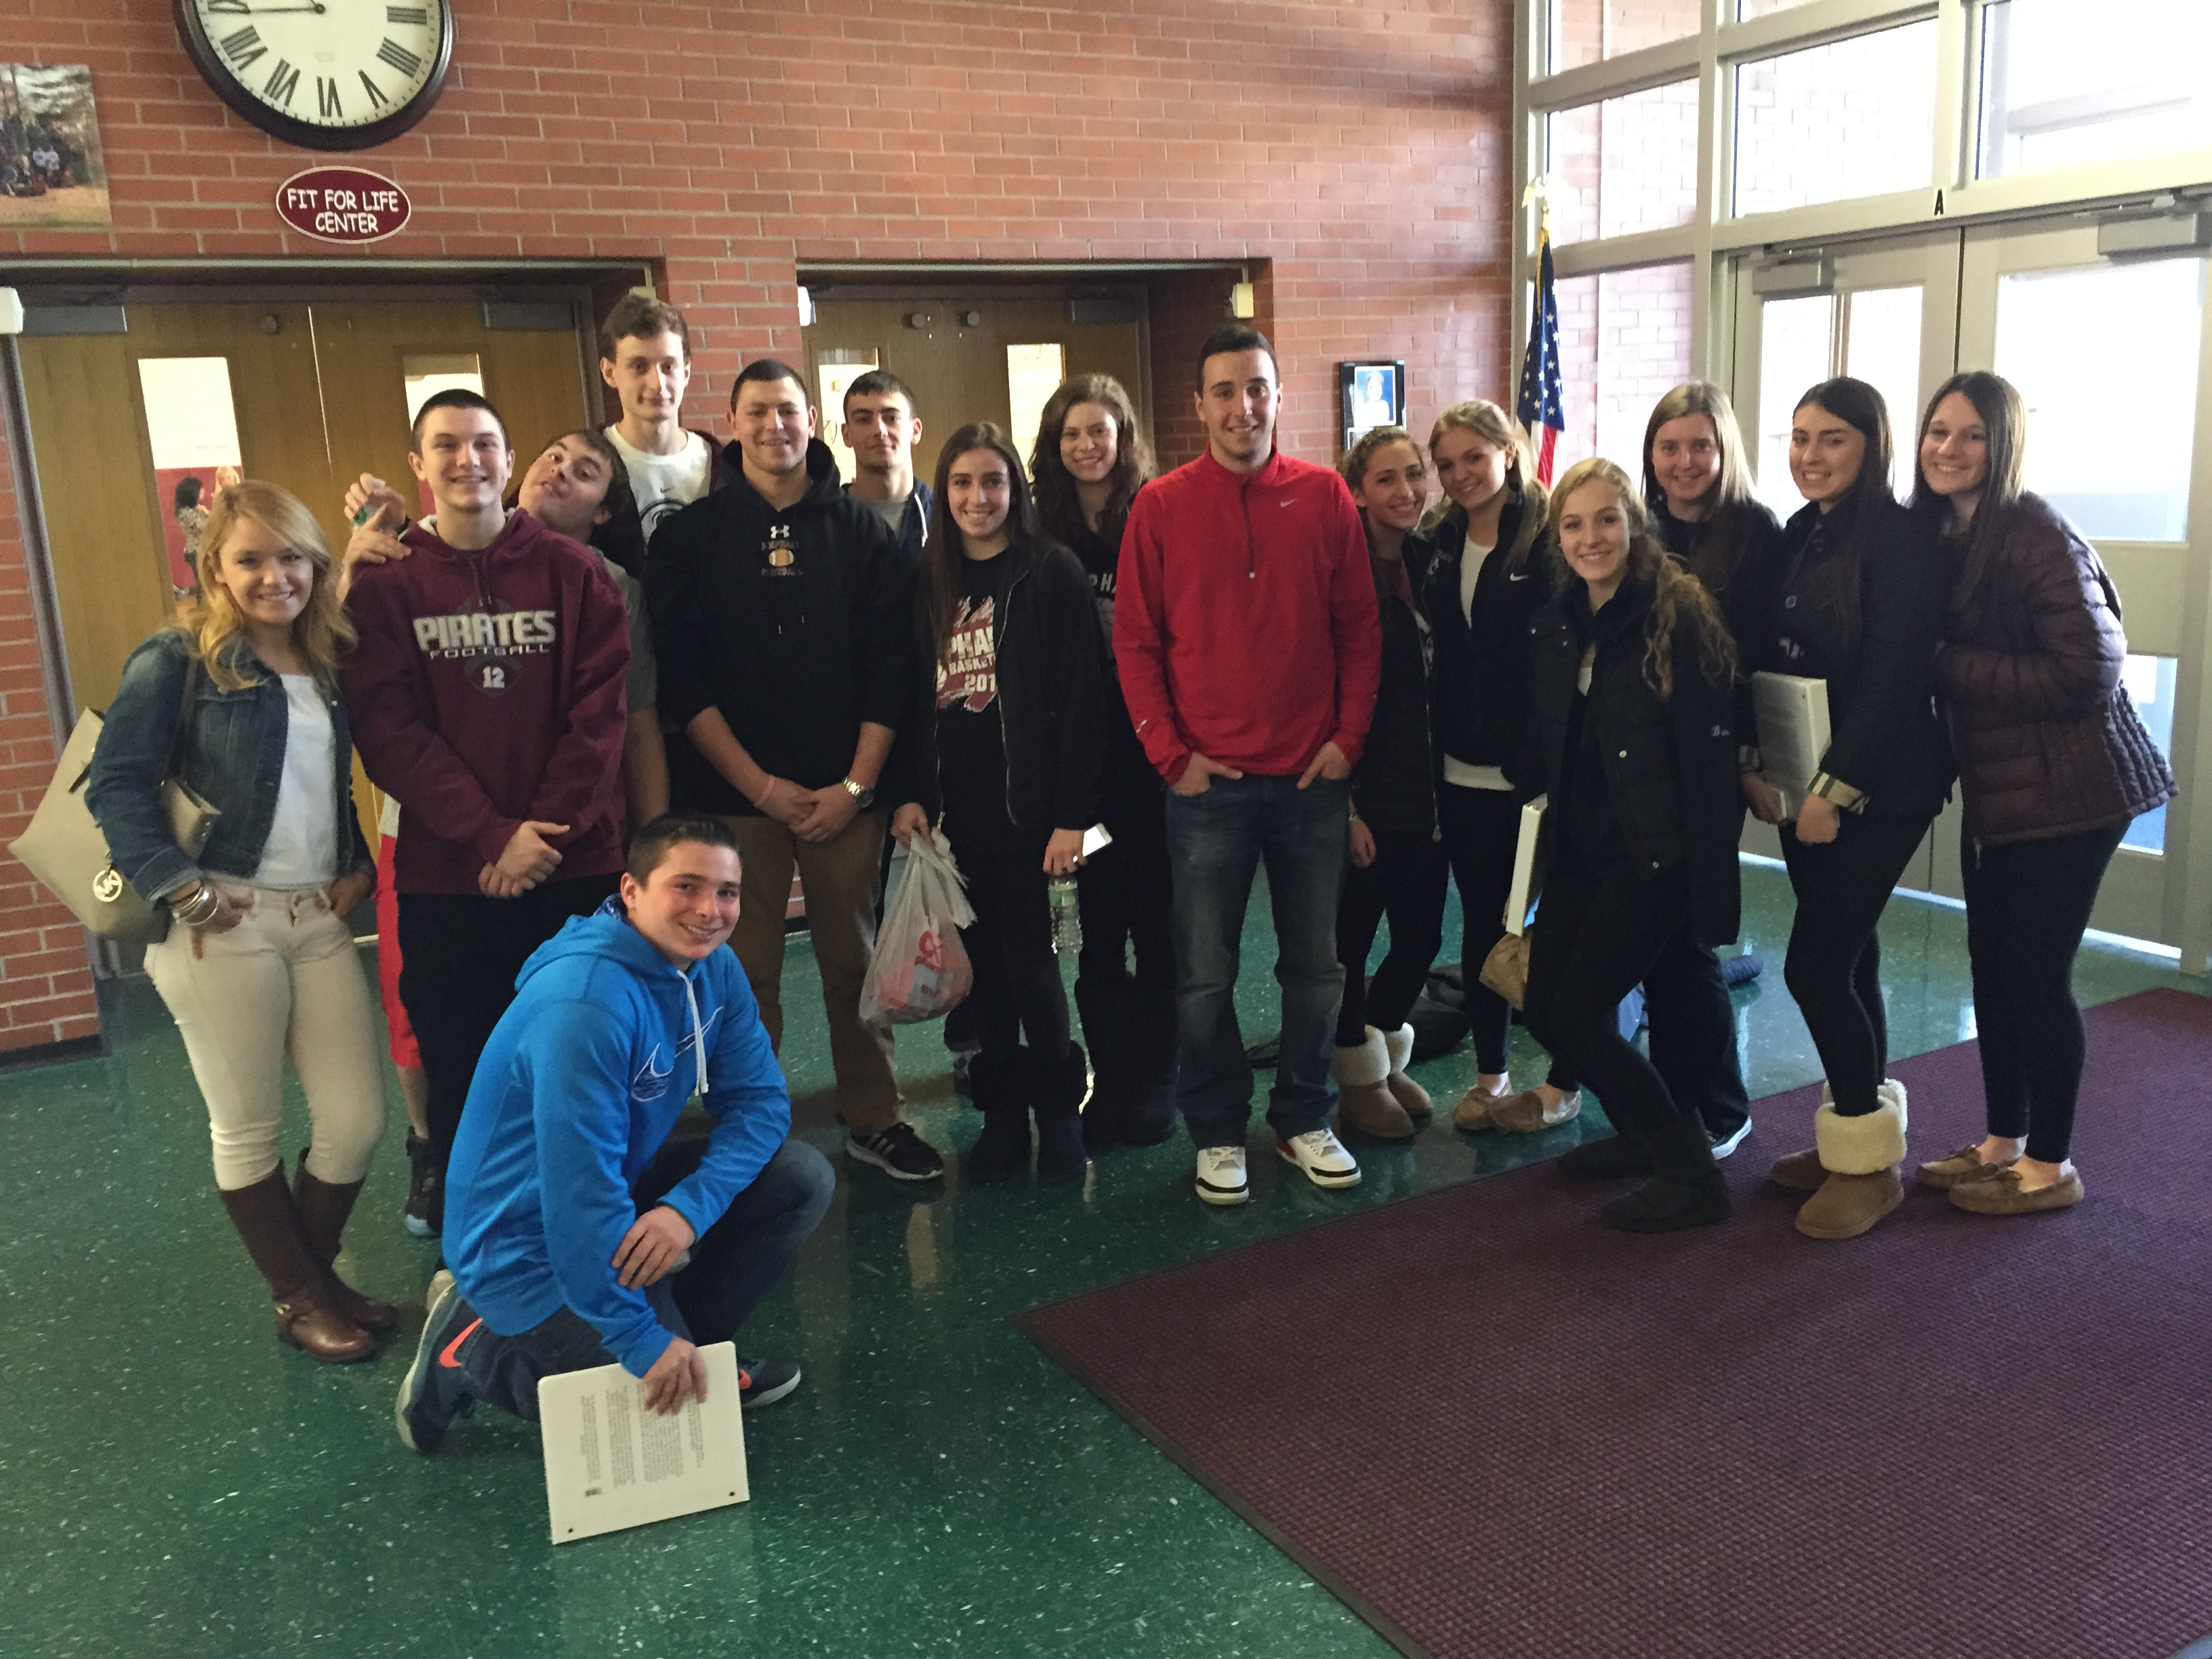 Mepham High School Student Athlete Leadership Team